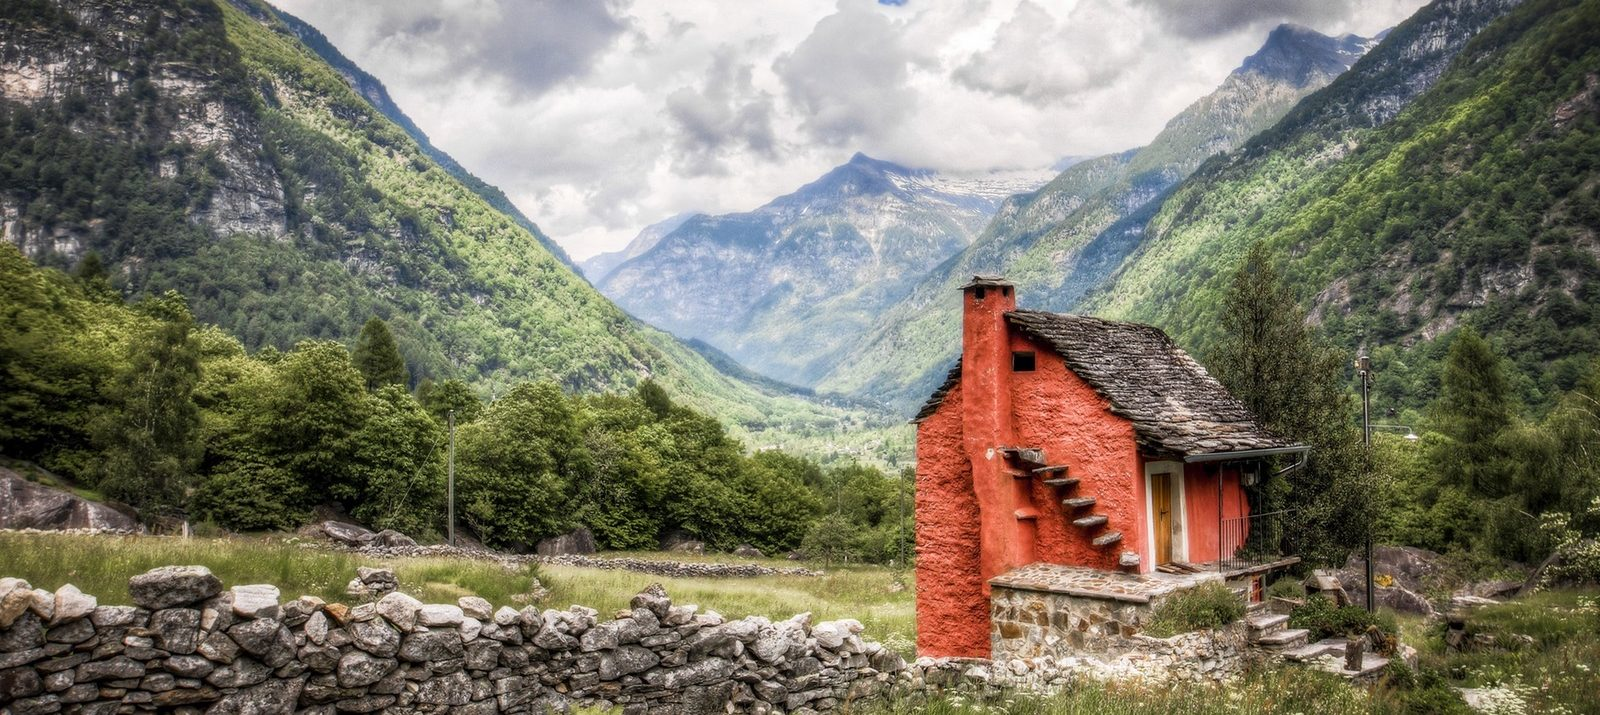 tiny red house on a sunny day with mountains in the background